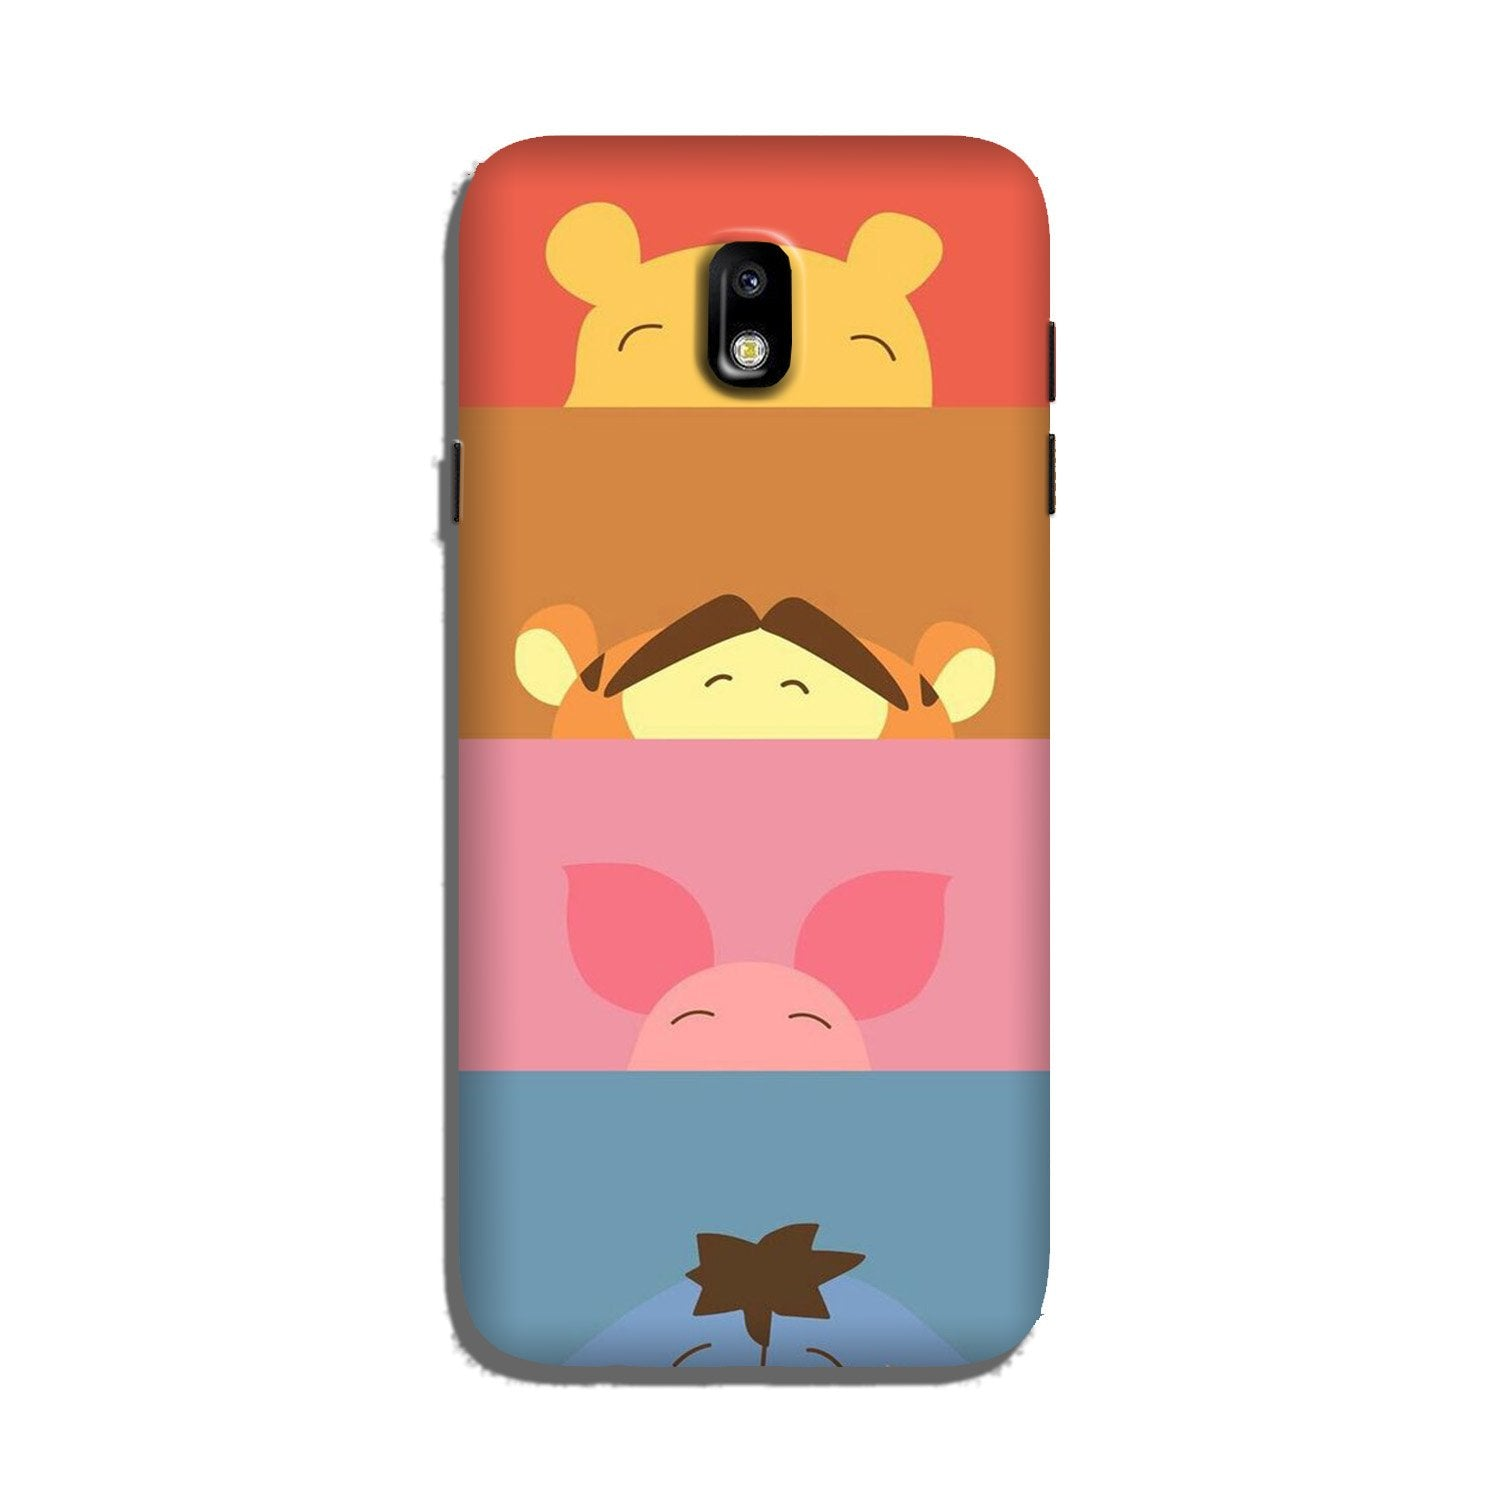 Cartoon Case for Galaxy J7 Pro (Design - 183)